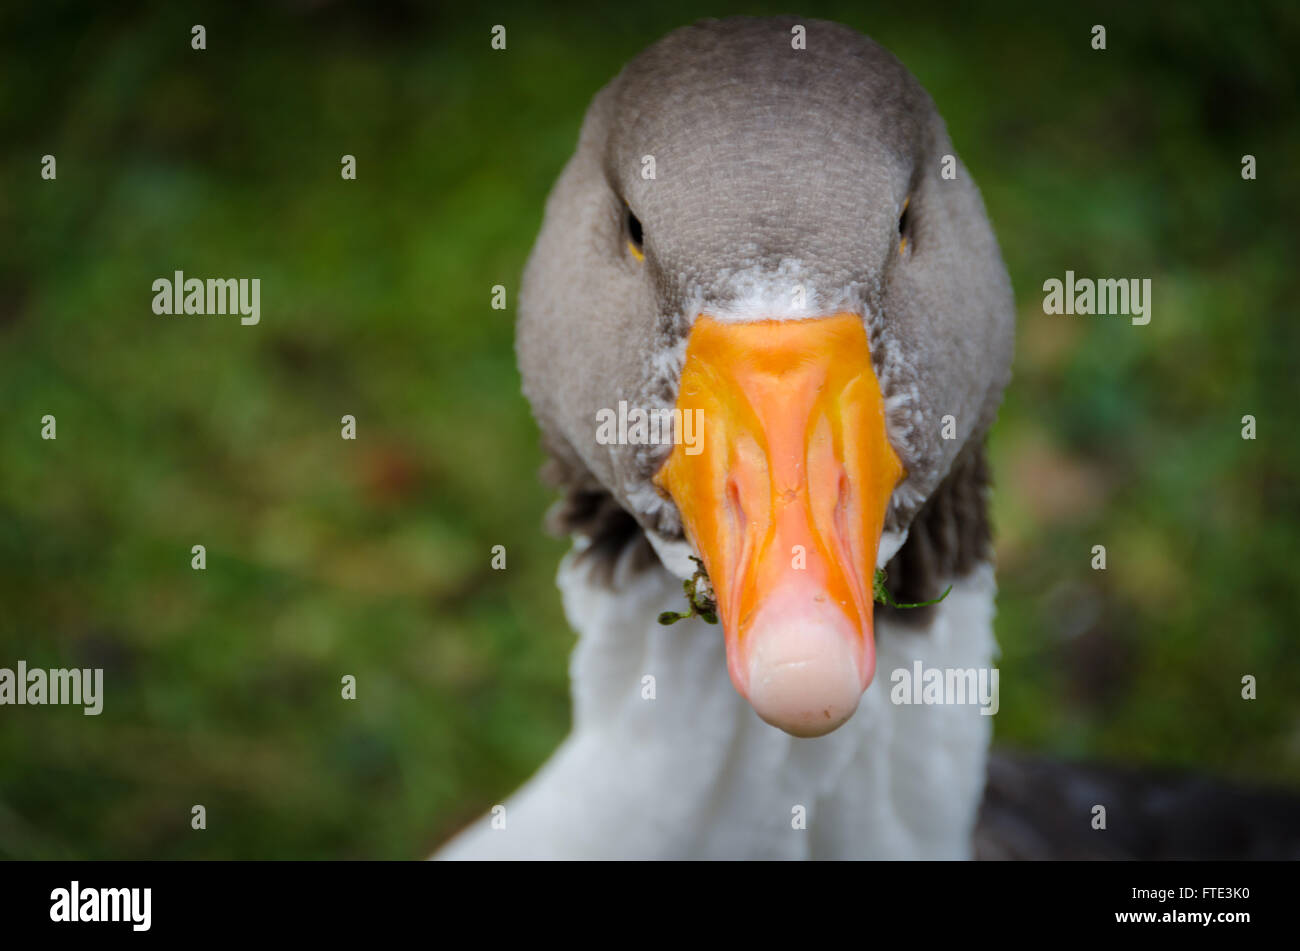 one swedish goose is eat graas and looking at the camera - Stock Image